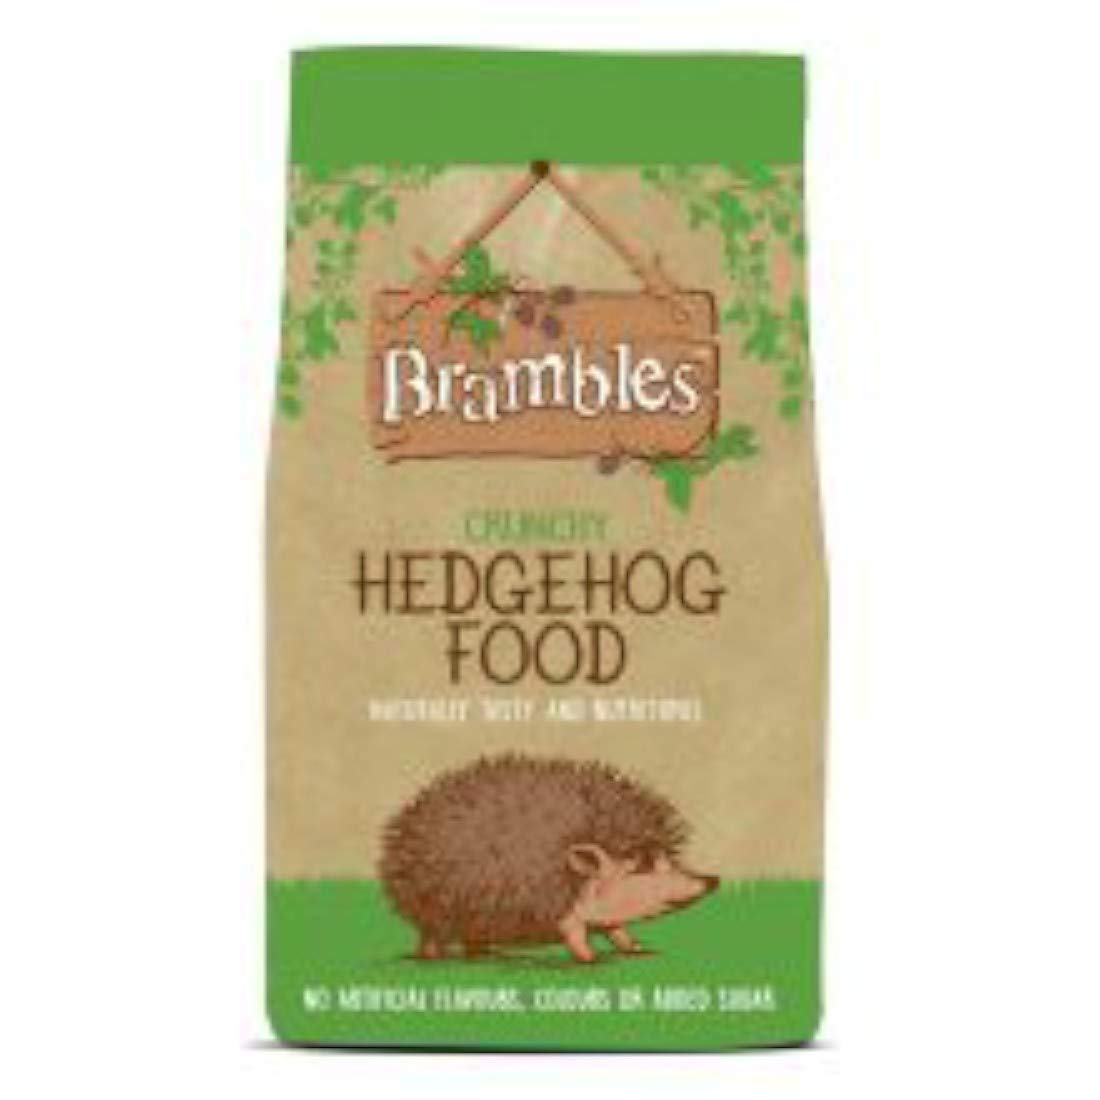 Brambles Crunchy Hedgehog Food (900g)